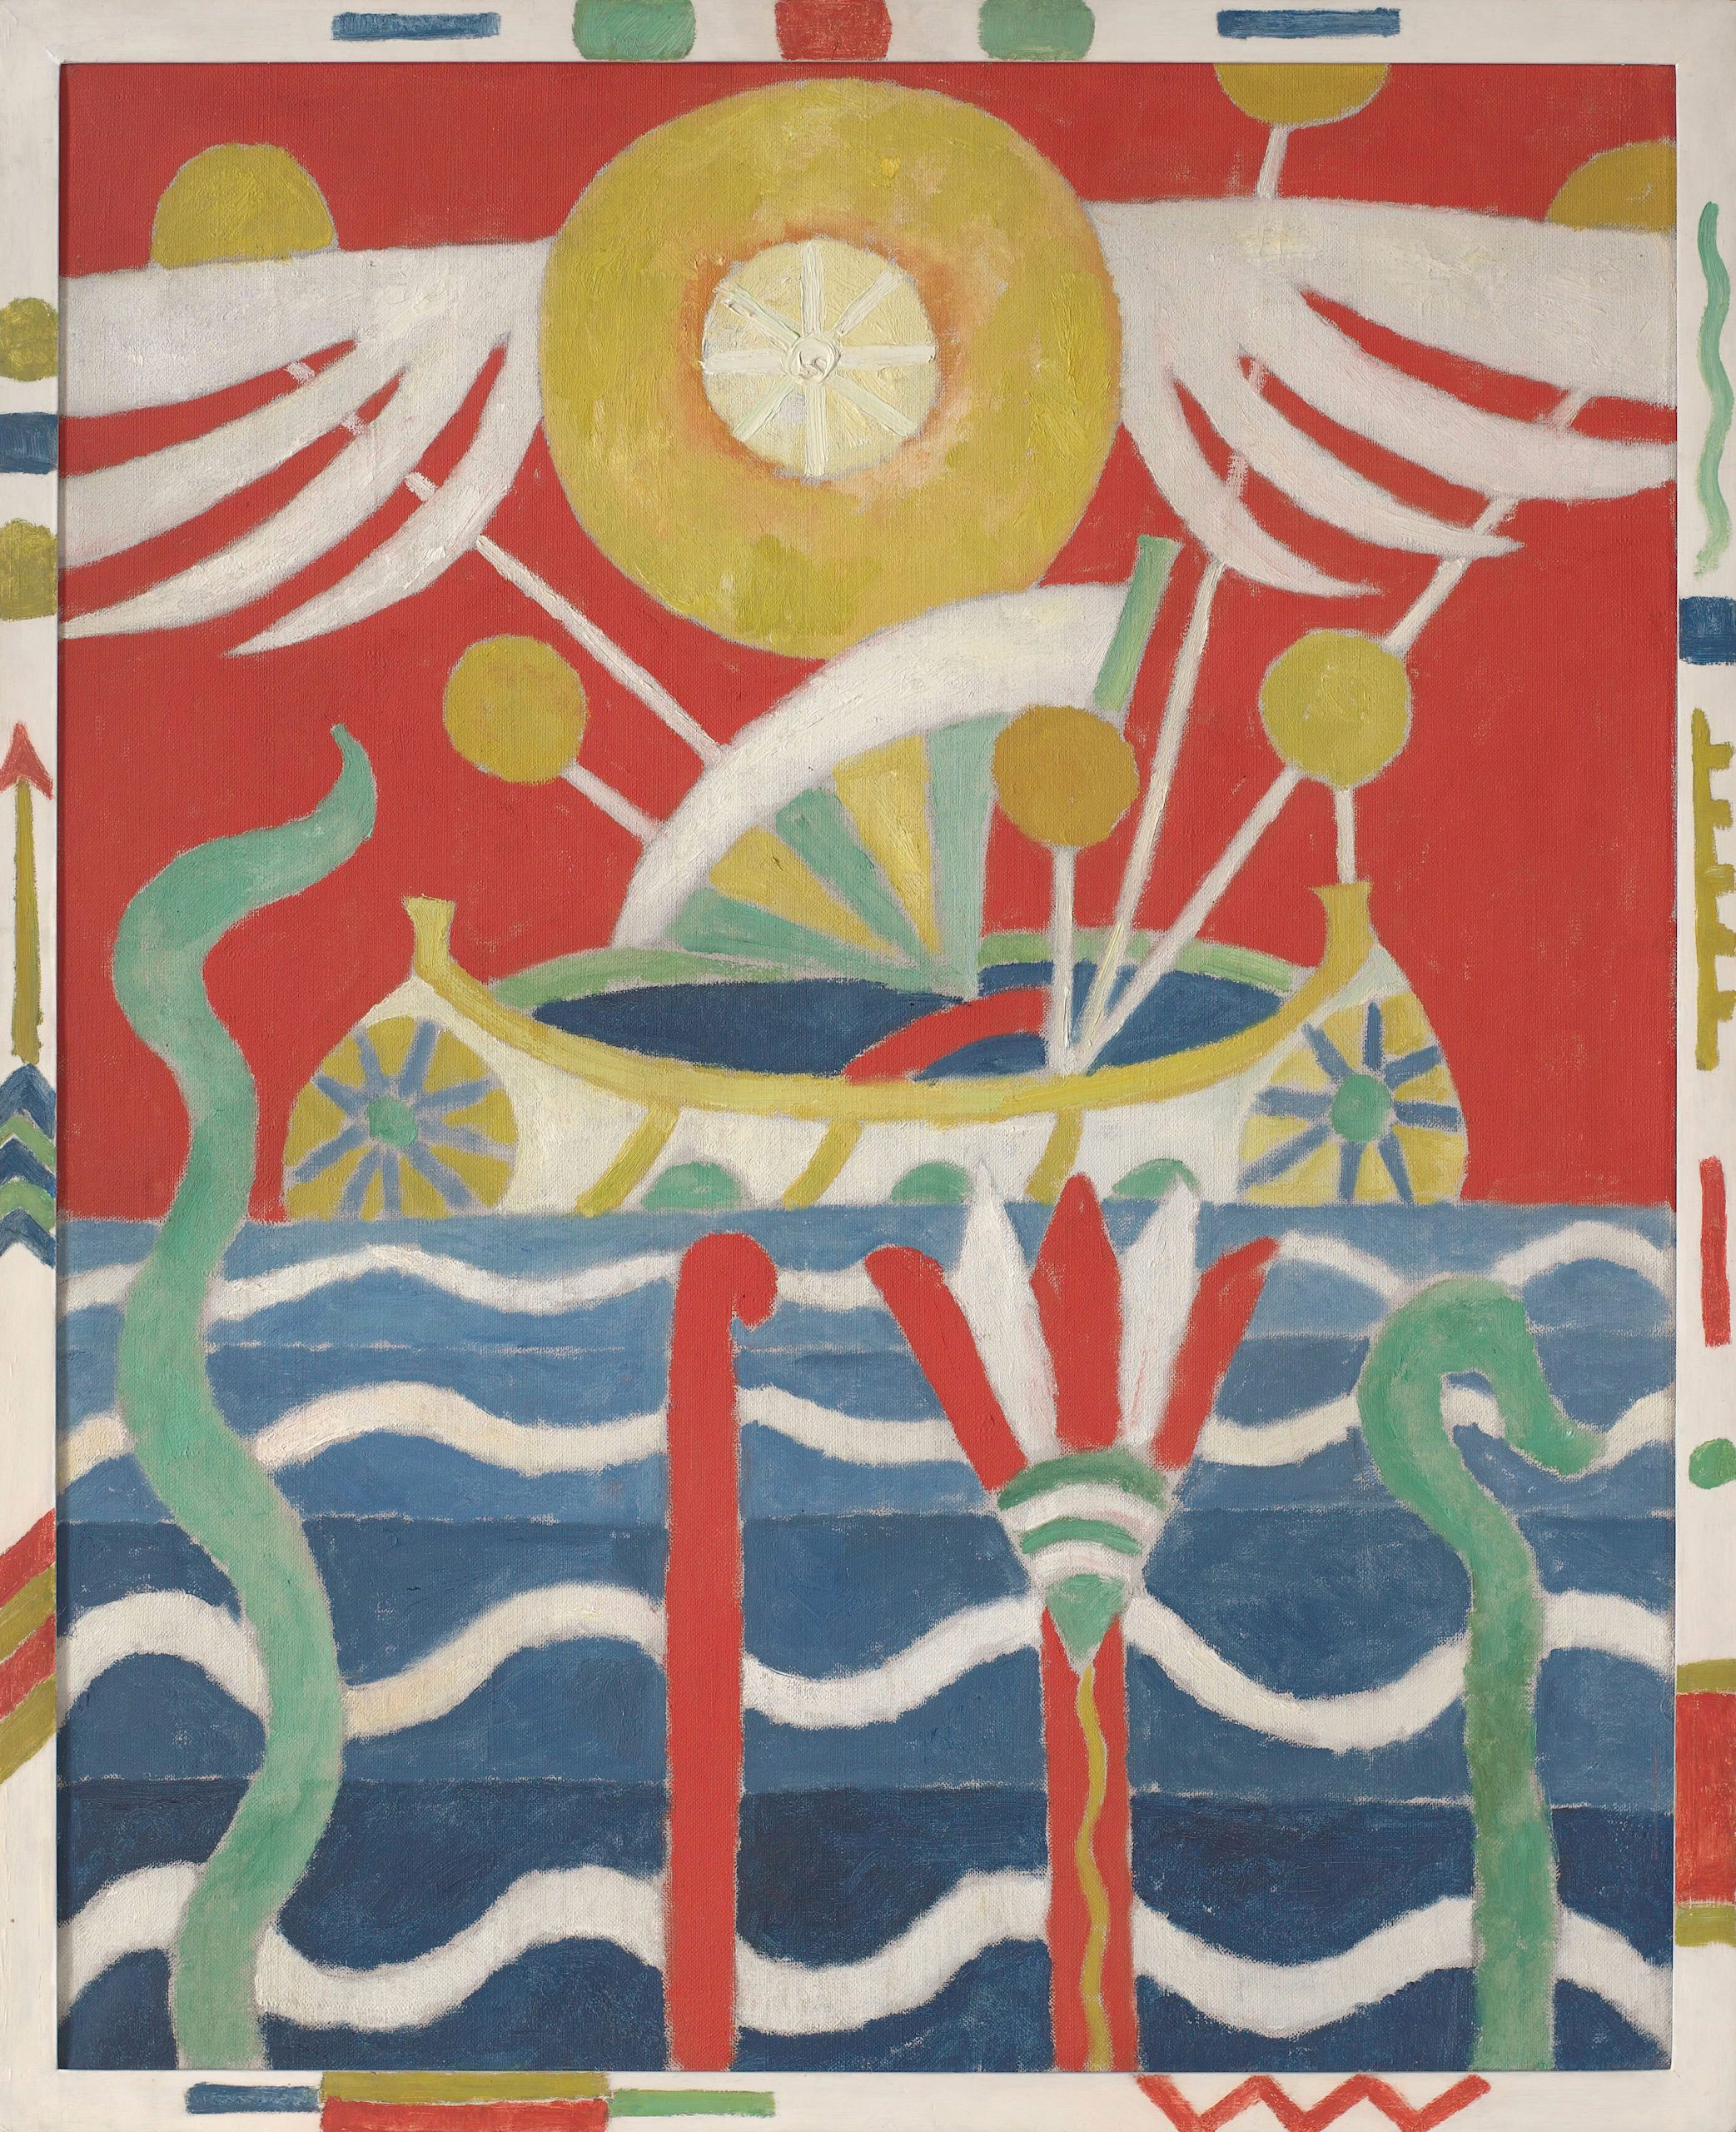 Marsden Hartley's Schiff with abstract images in bright reds, yellows, and blues.